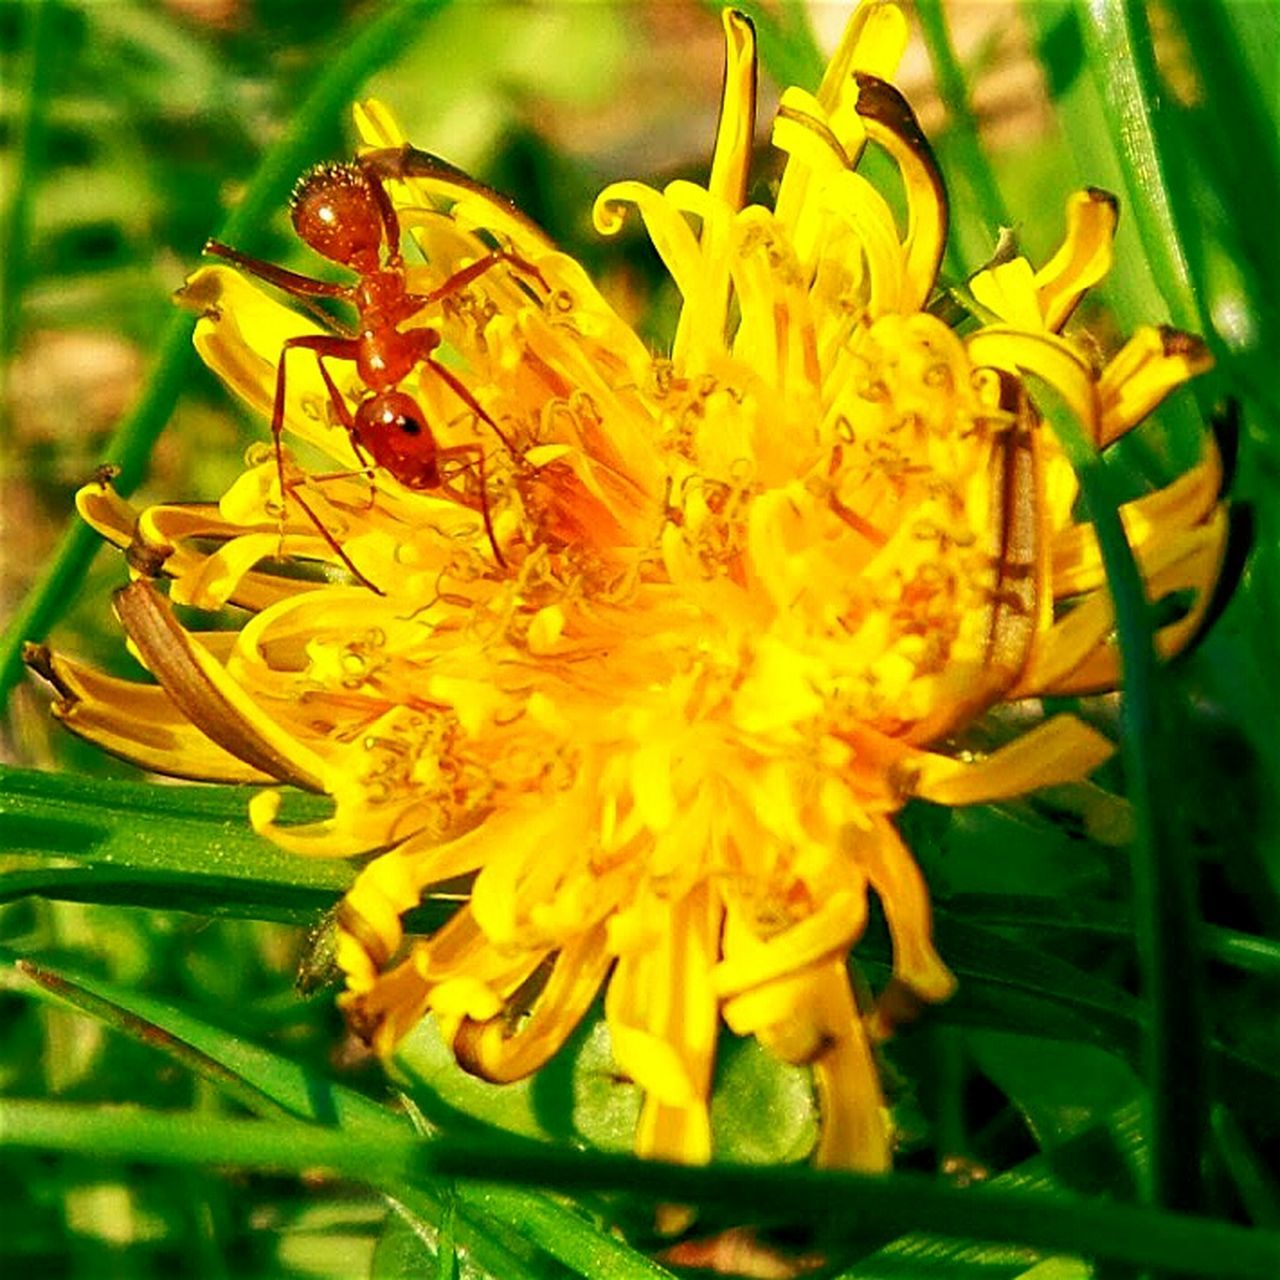 flower, animal themes, petal, animals in the wild, one animal, insect, fragility, nature, growth, flower head, plant, freshness, yellow, beauty in nature, close-up, no people, wildlife, outdoors, day, animal wildlife, bee, pollination